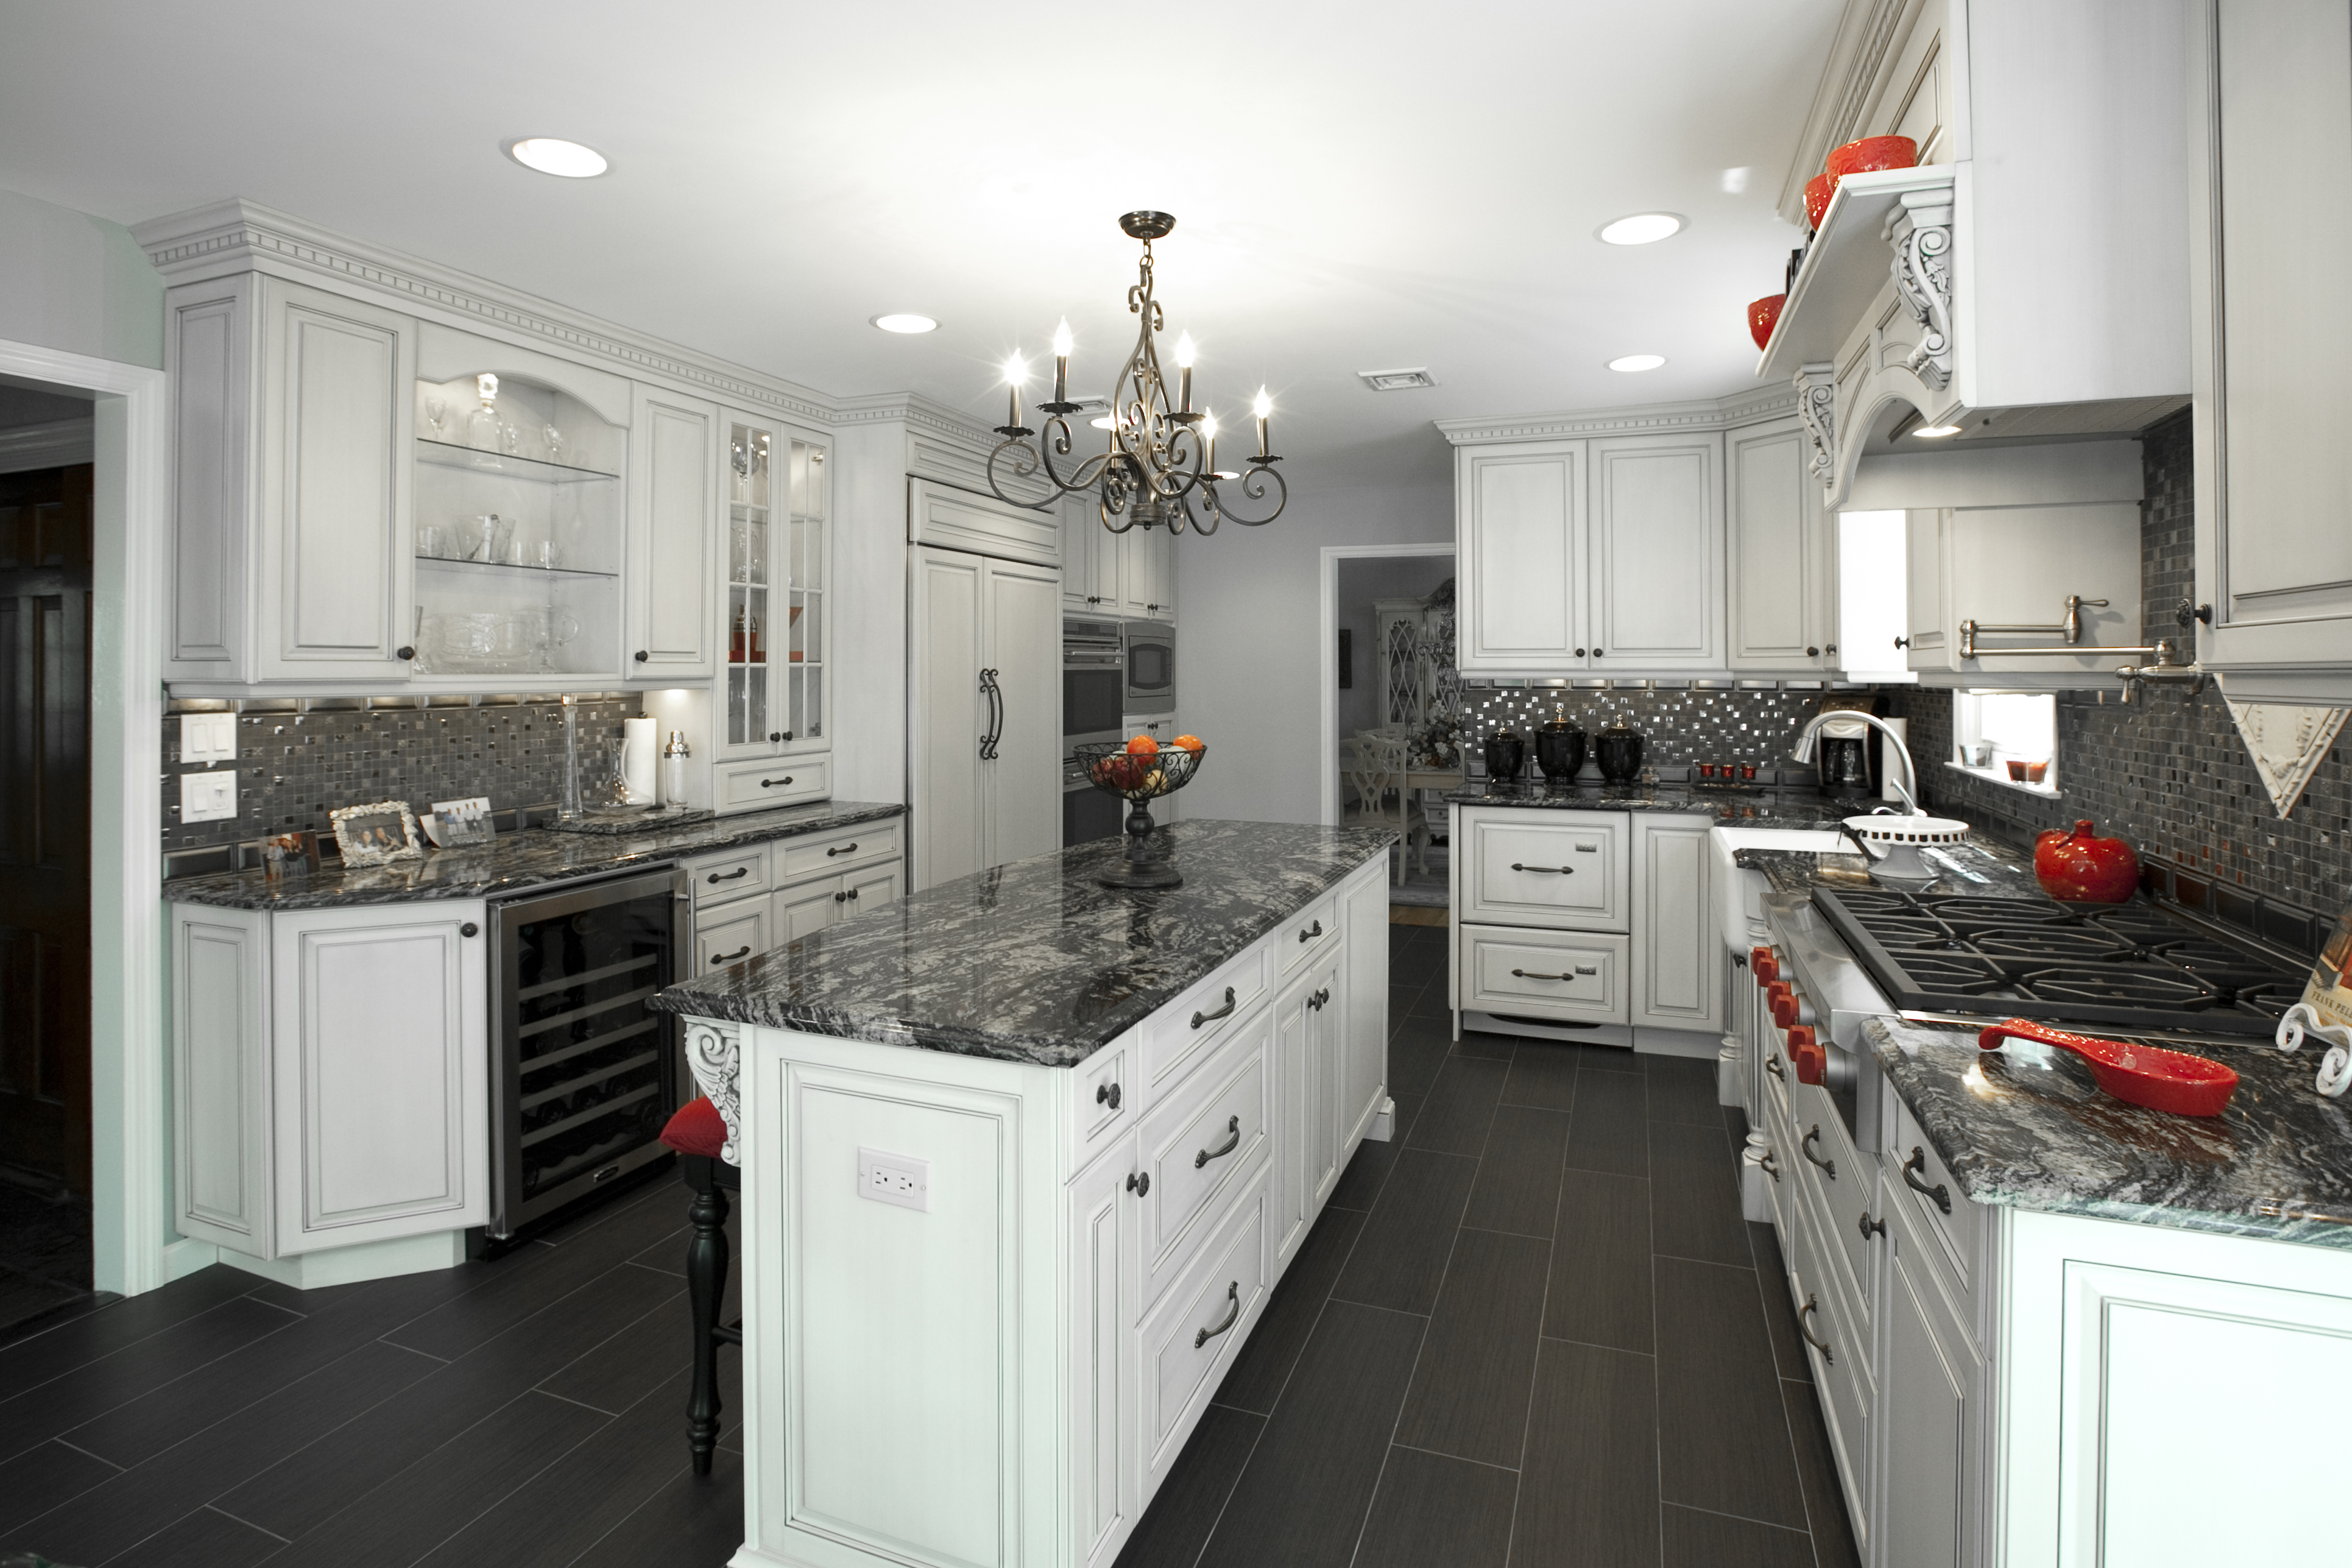 New White Kitchen Cabinets Black And White Kitchen Middletown New Jersey By Design